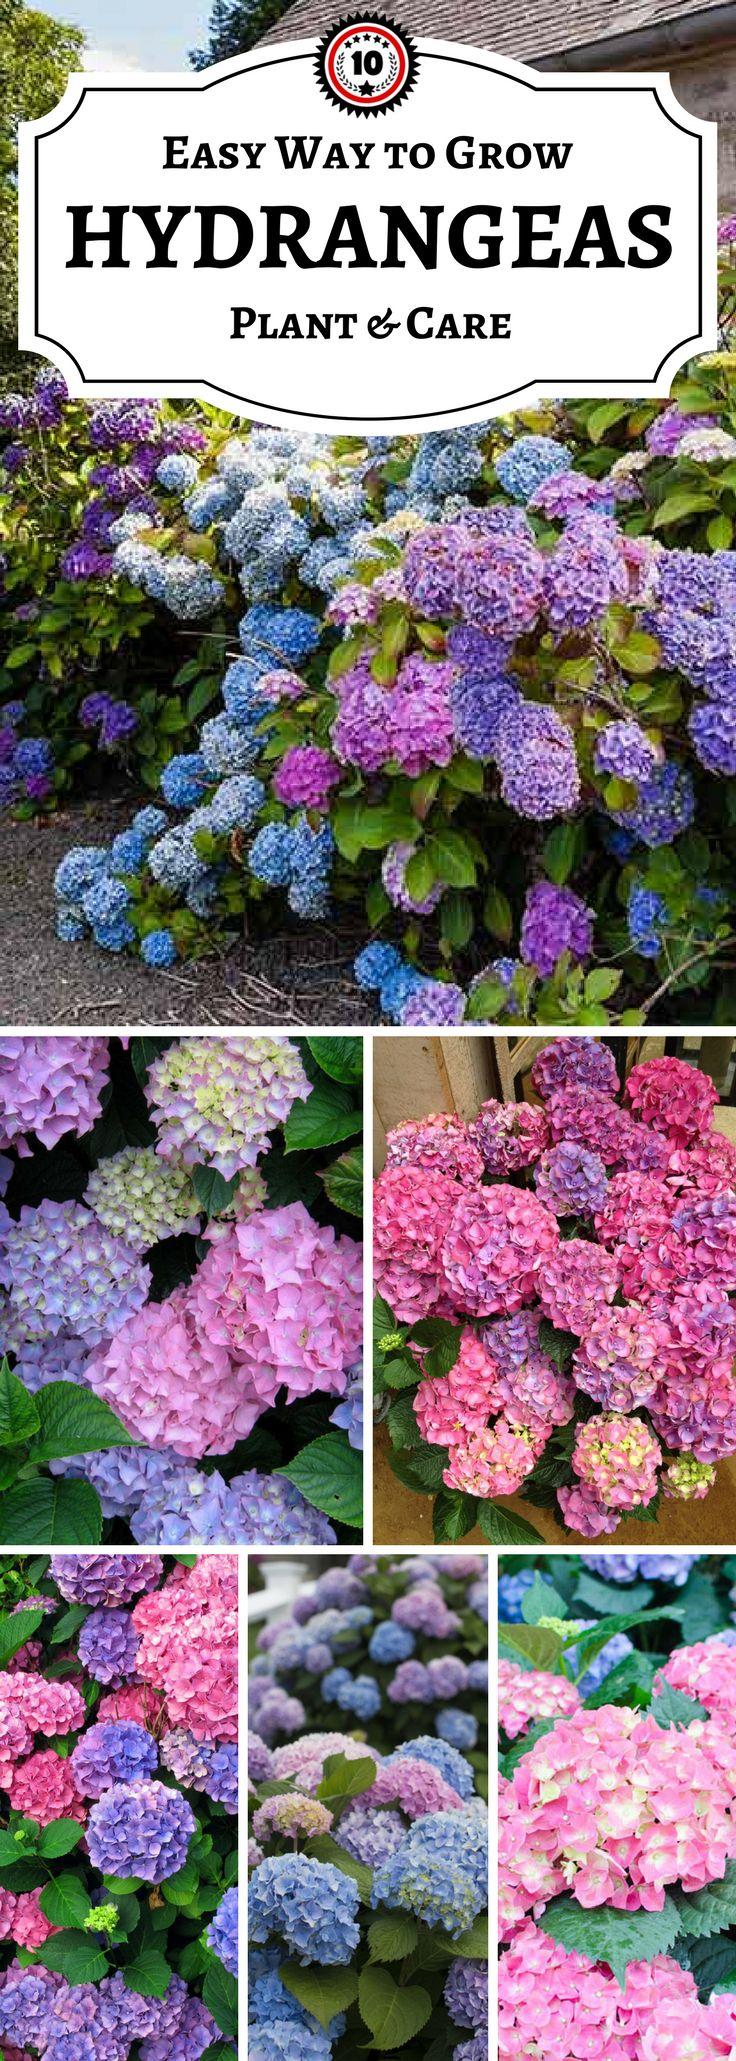 10 tips for hydrangeas